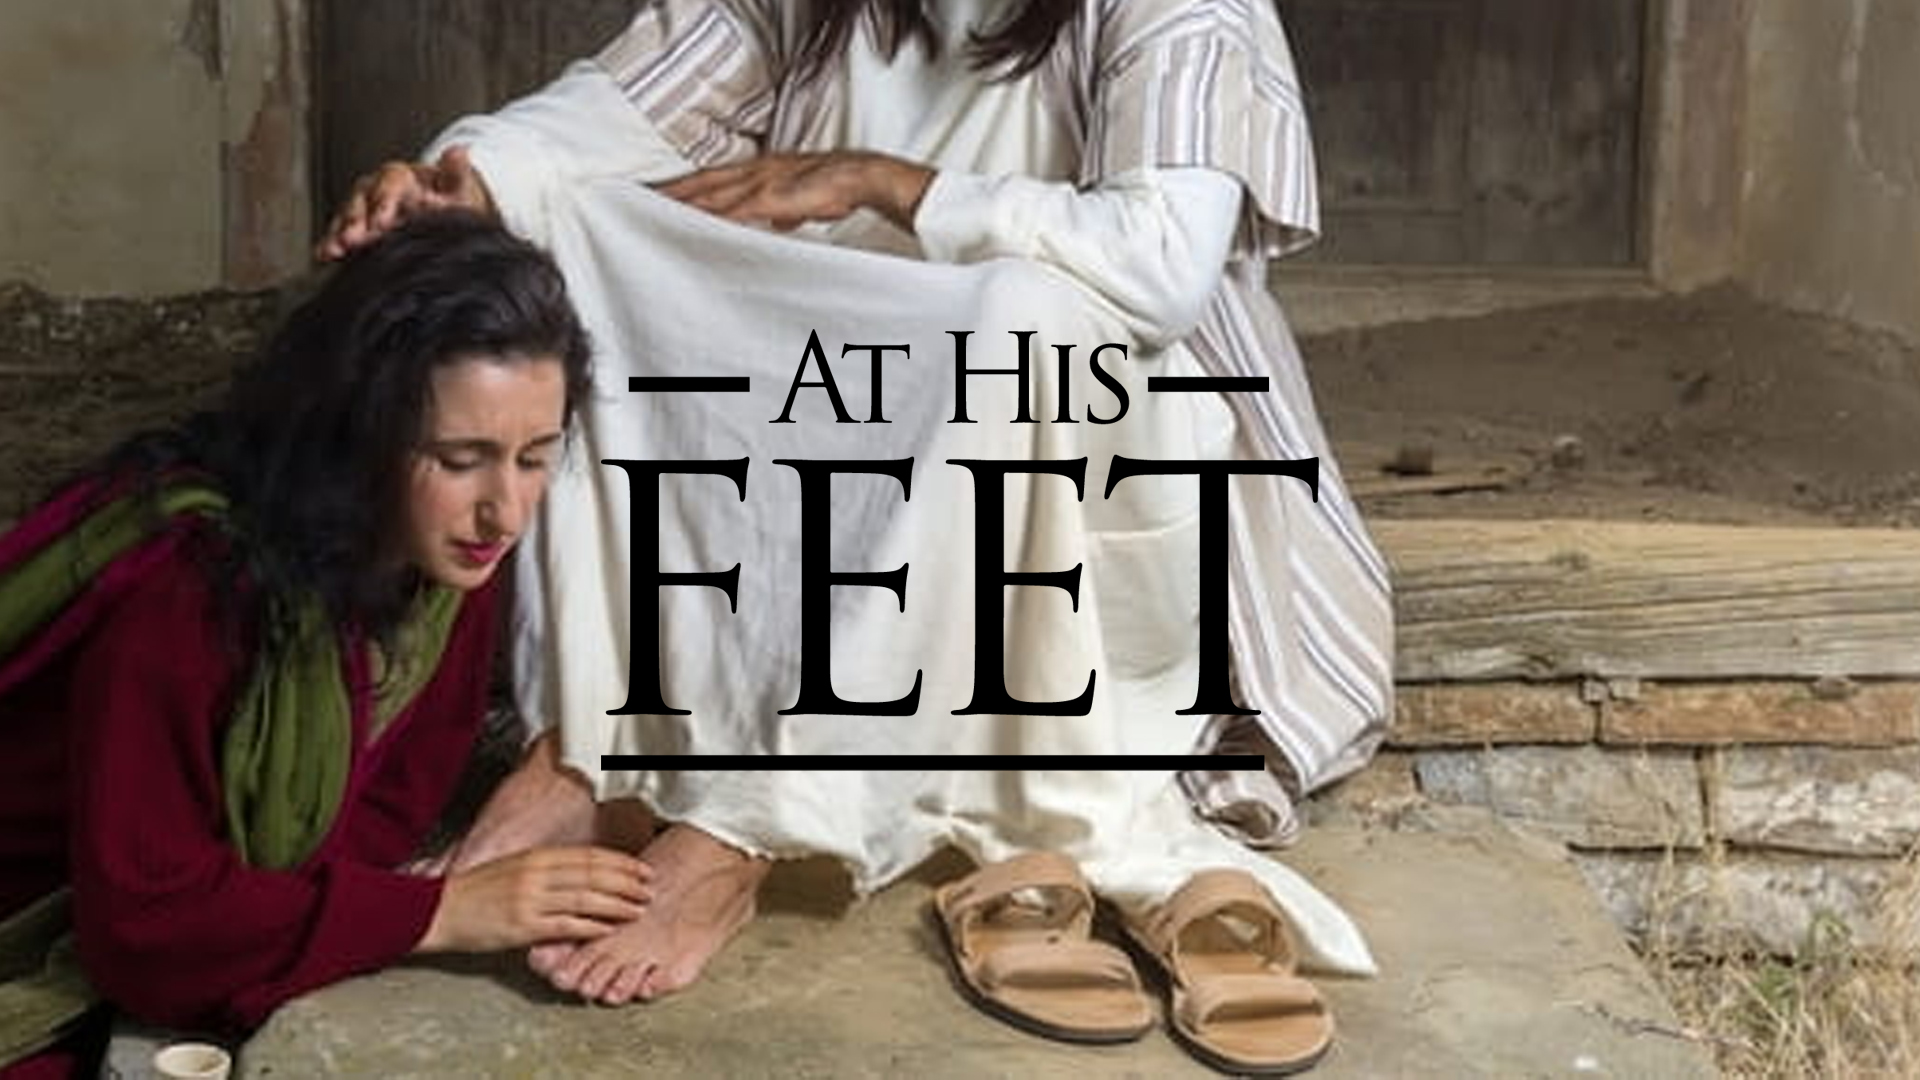 Lay Your Burdens at His Feet